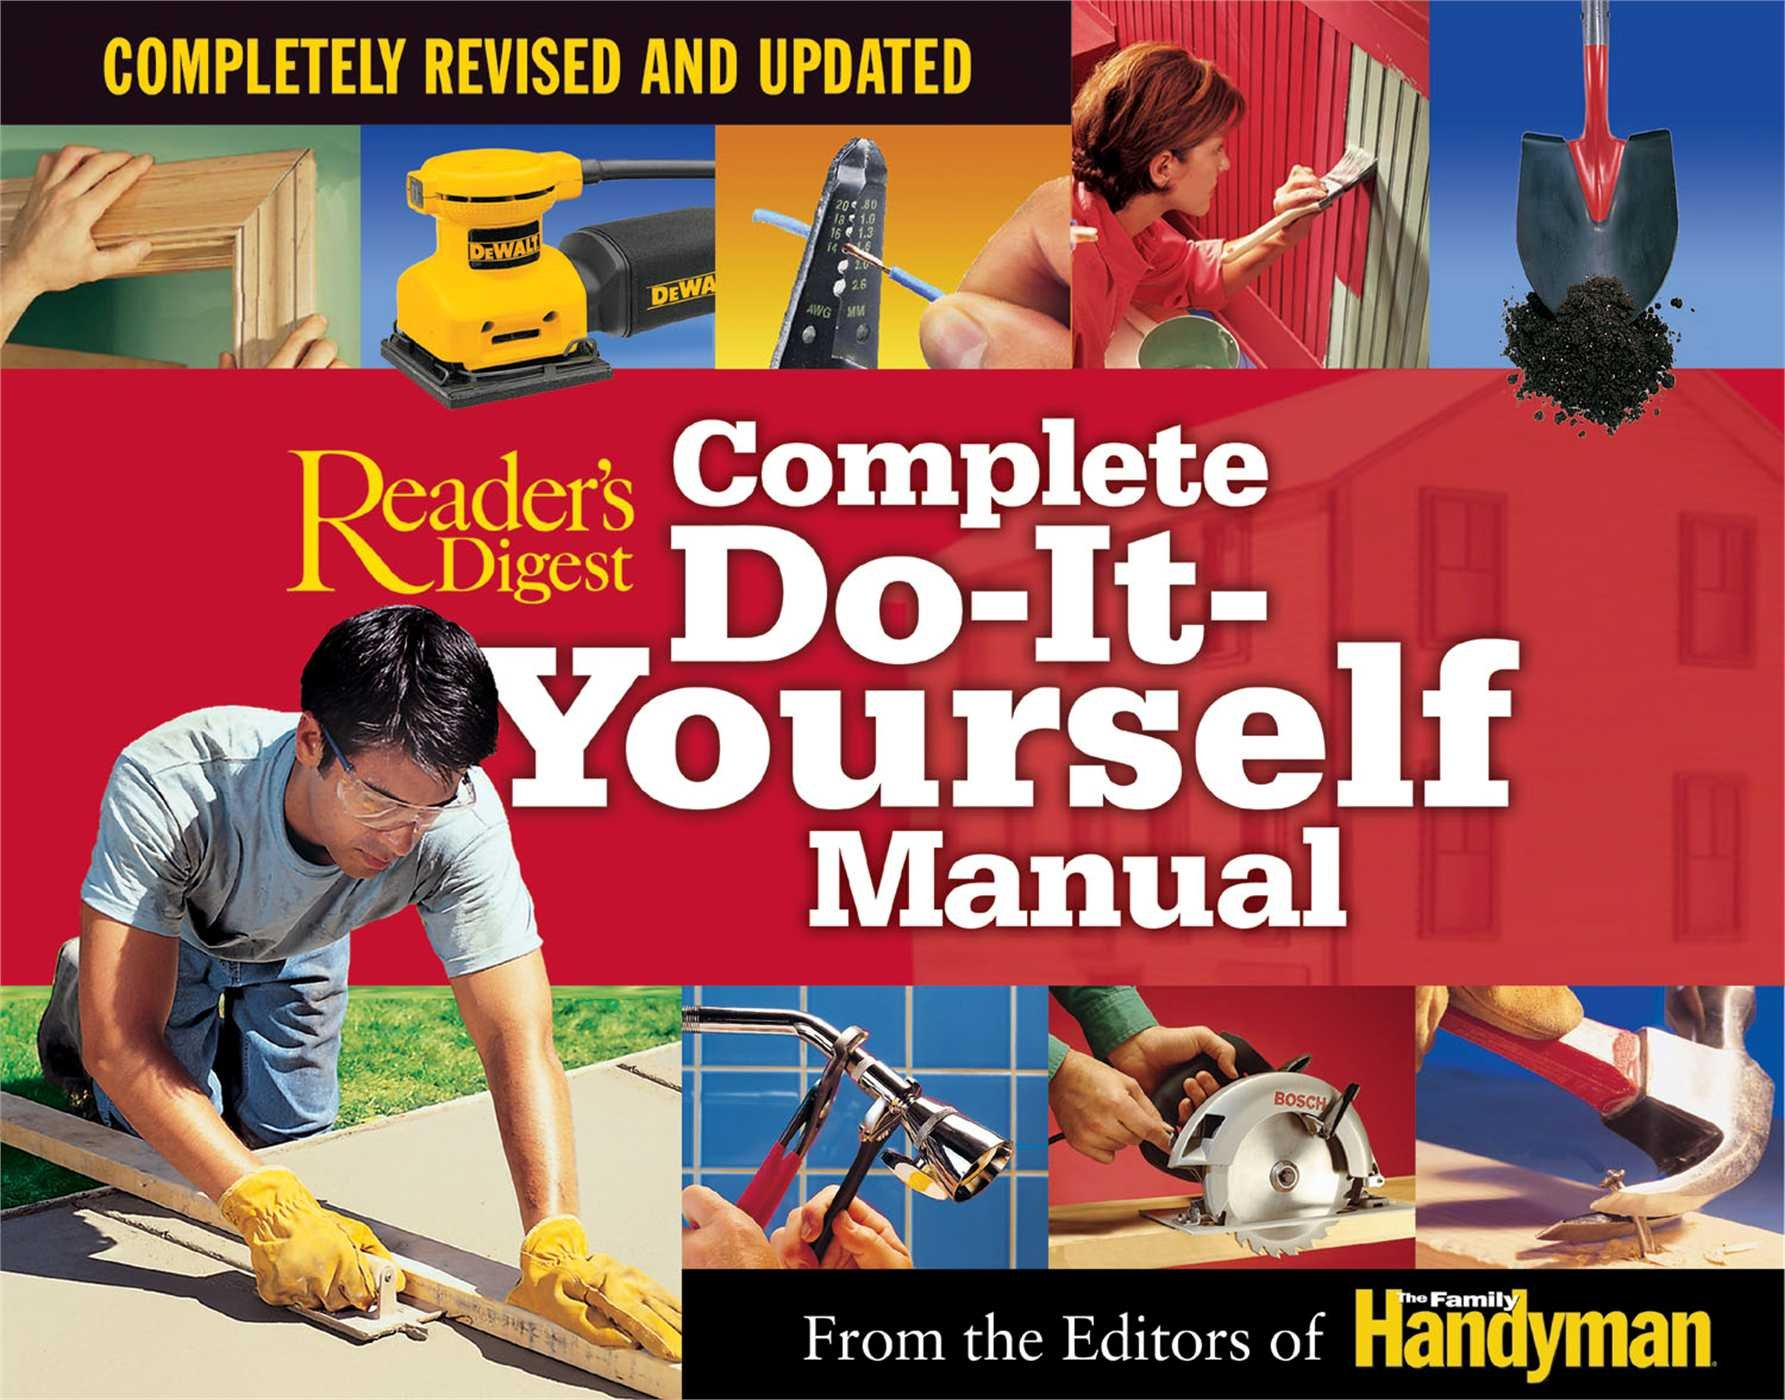 Complete do it yourself manual completely revised and updated complete do it yourself manual completely revised and updated editors of the family handyman 9780762105793 amazon books solutioingenieria Choice Image